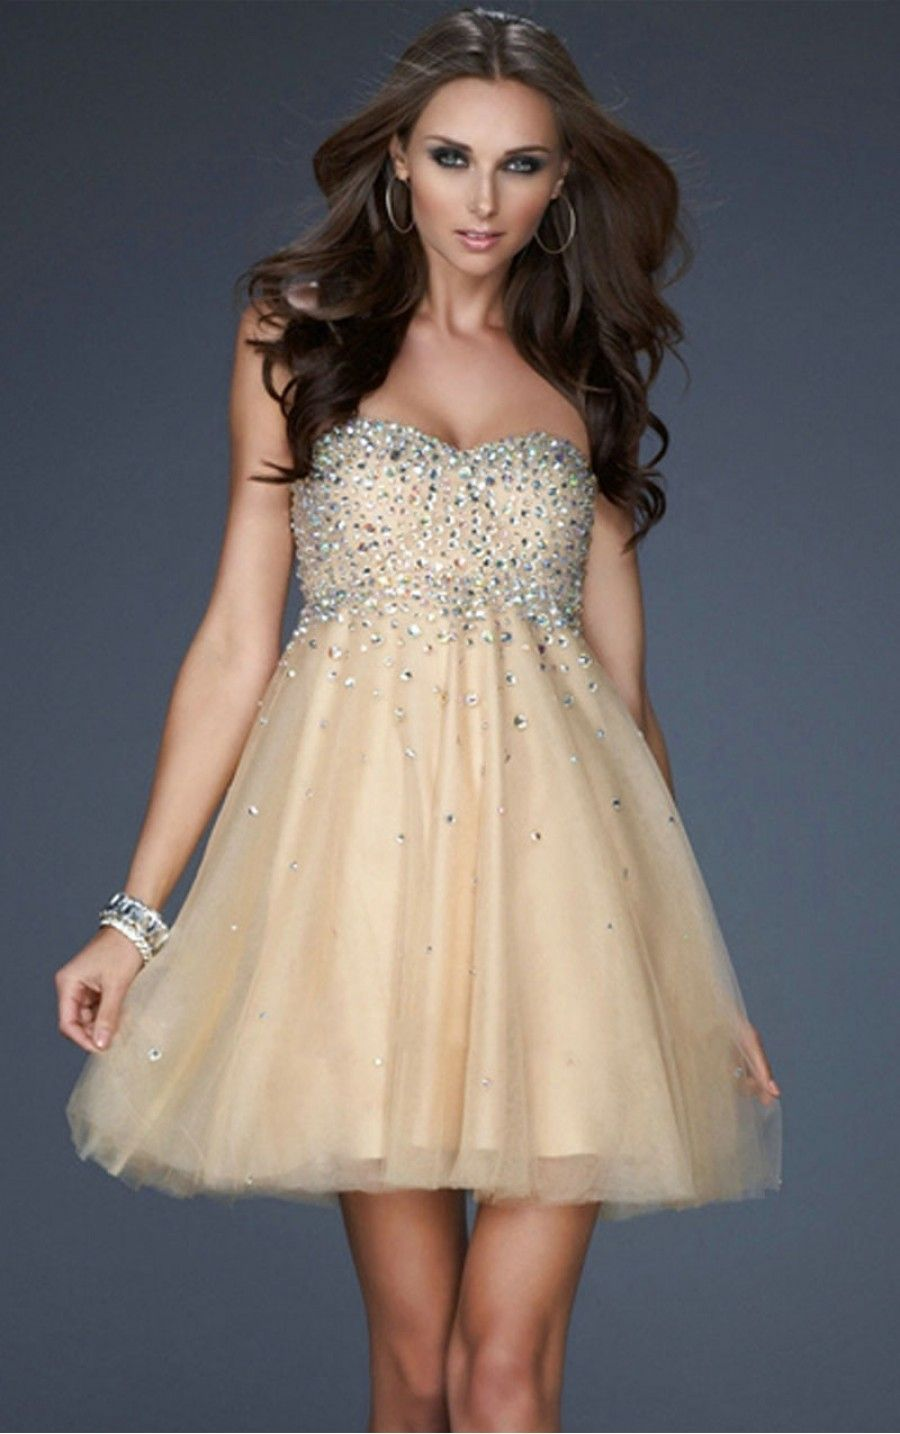 Champagne Princess Short Sweetheart Dress [Dresses 9774] - $142.00 ...